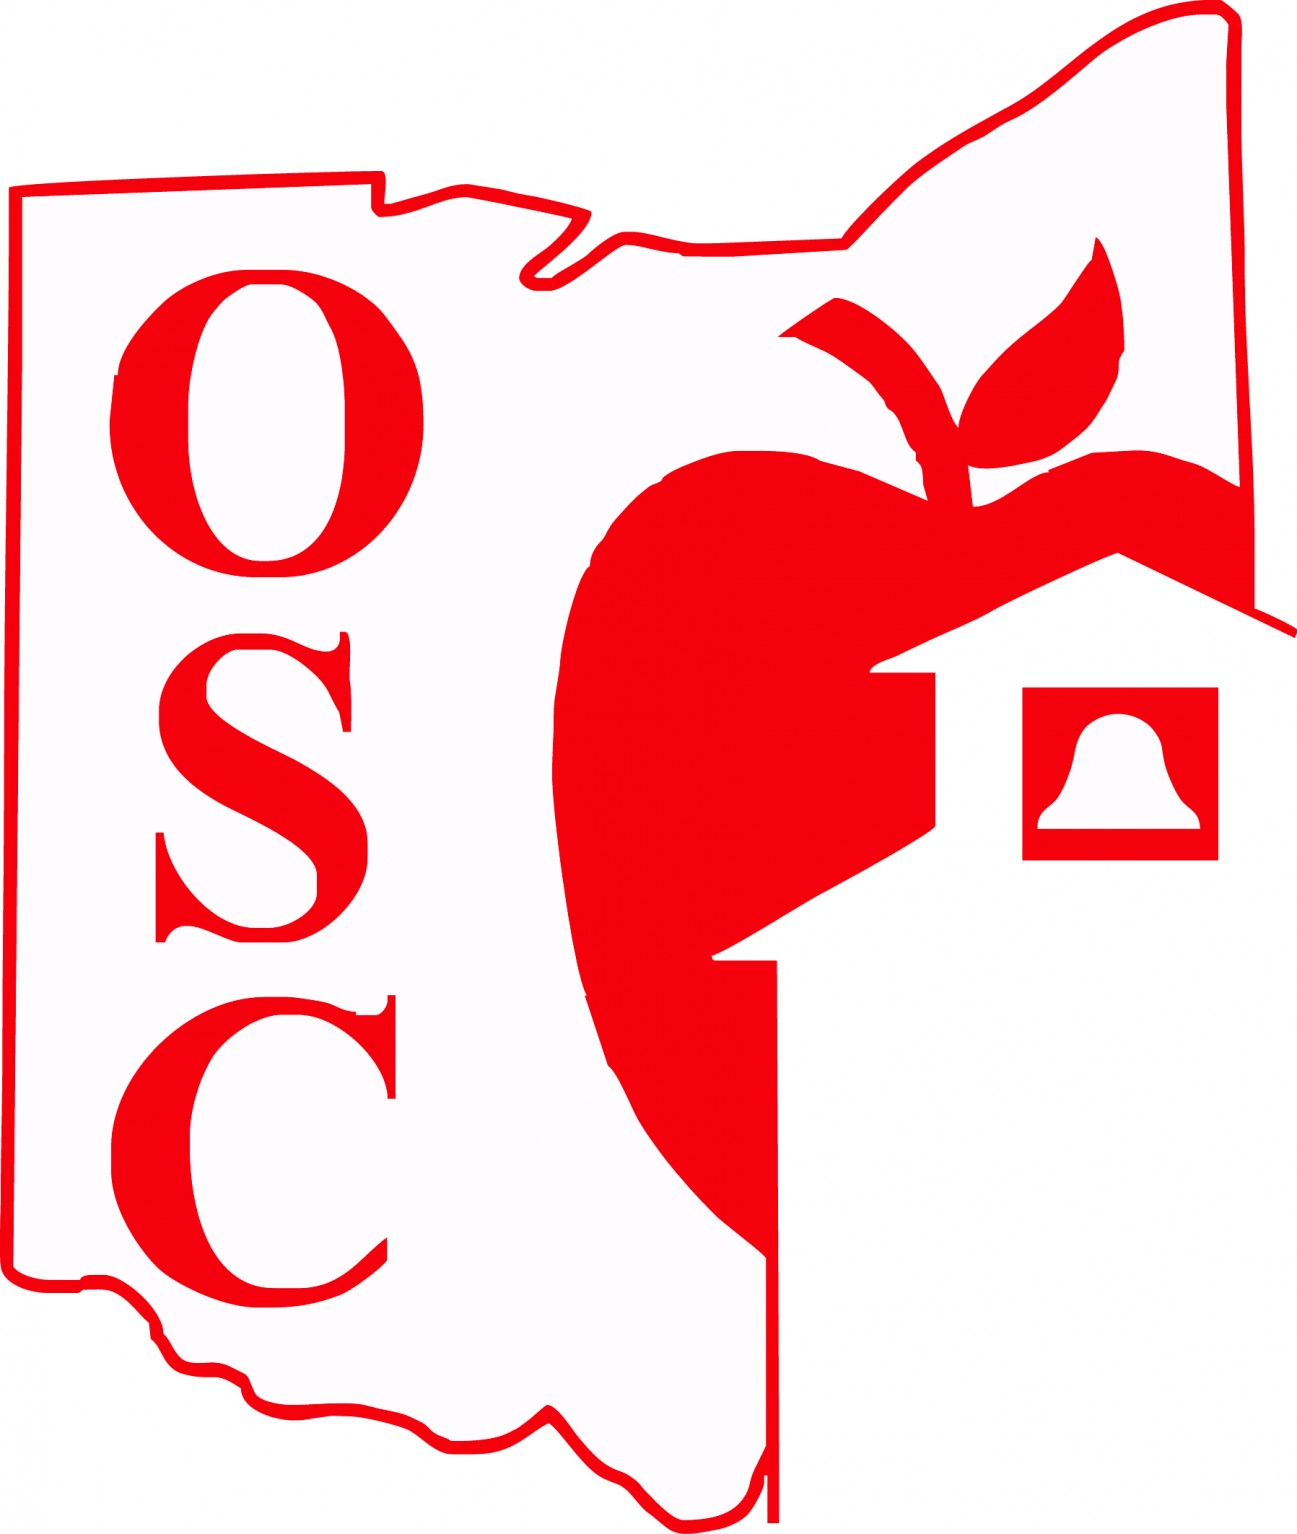 Preferred Partner of OSC